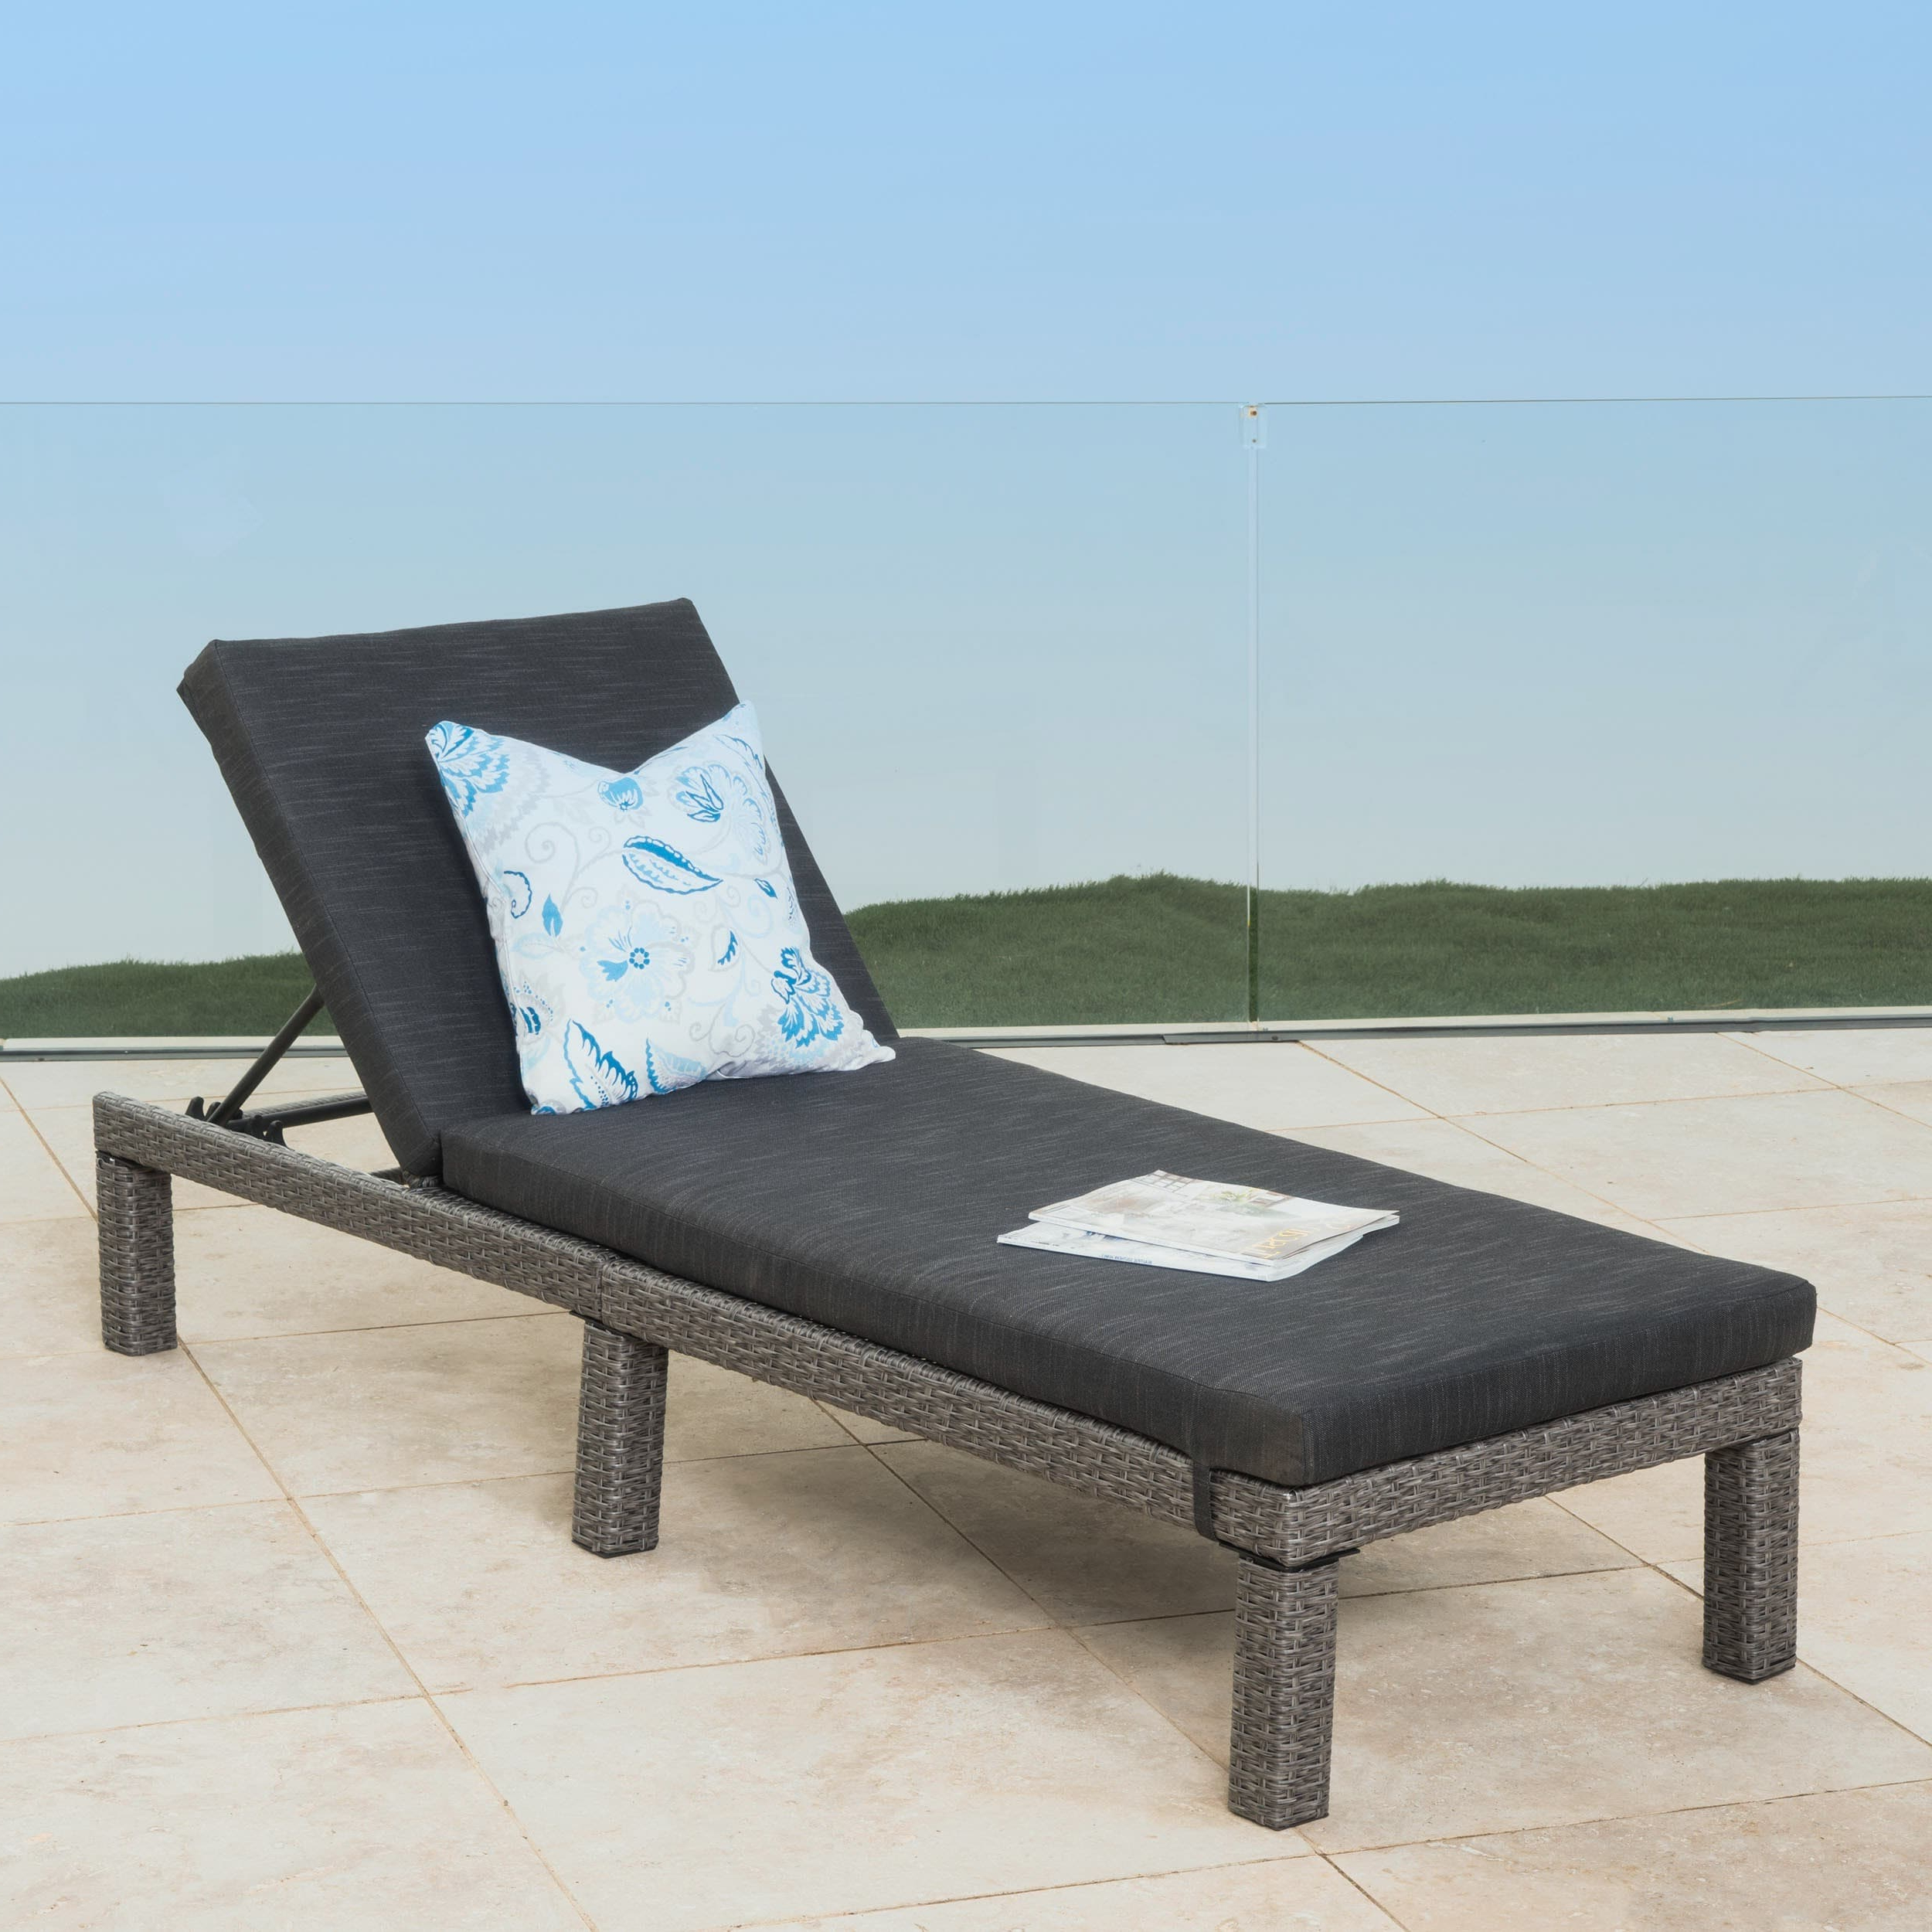 Favorite White Wicker Adjustable Chaise Loungers With Cushions Pertaining To Christopher Knight Home Puerta Outdoor Adjustable Wicker Chaise Lounge With  Cushion By (View 8 of 25)